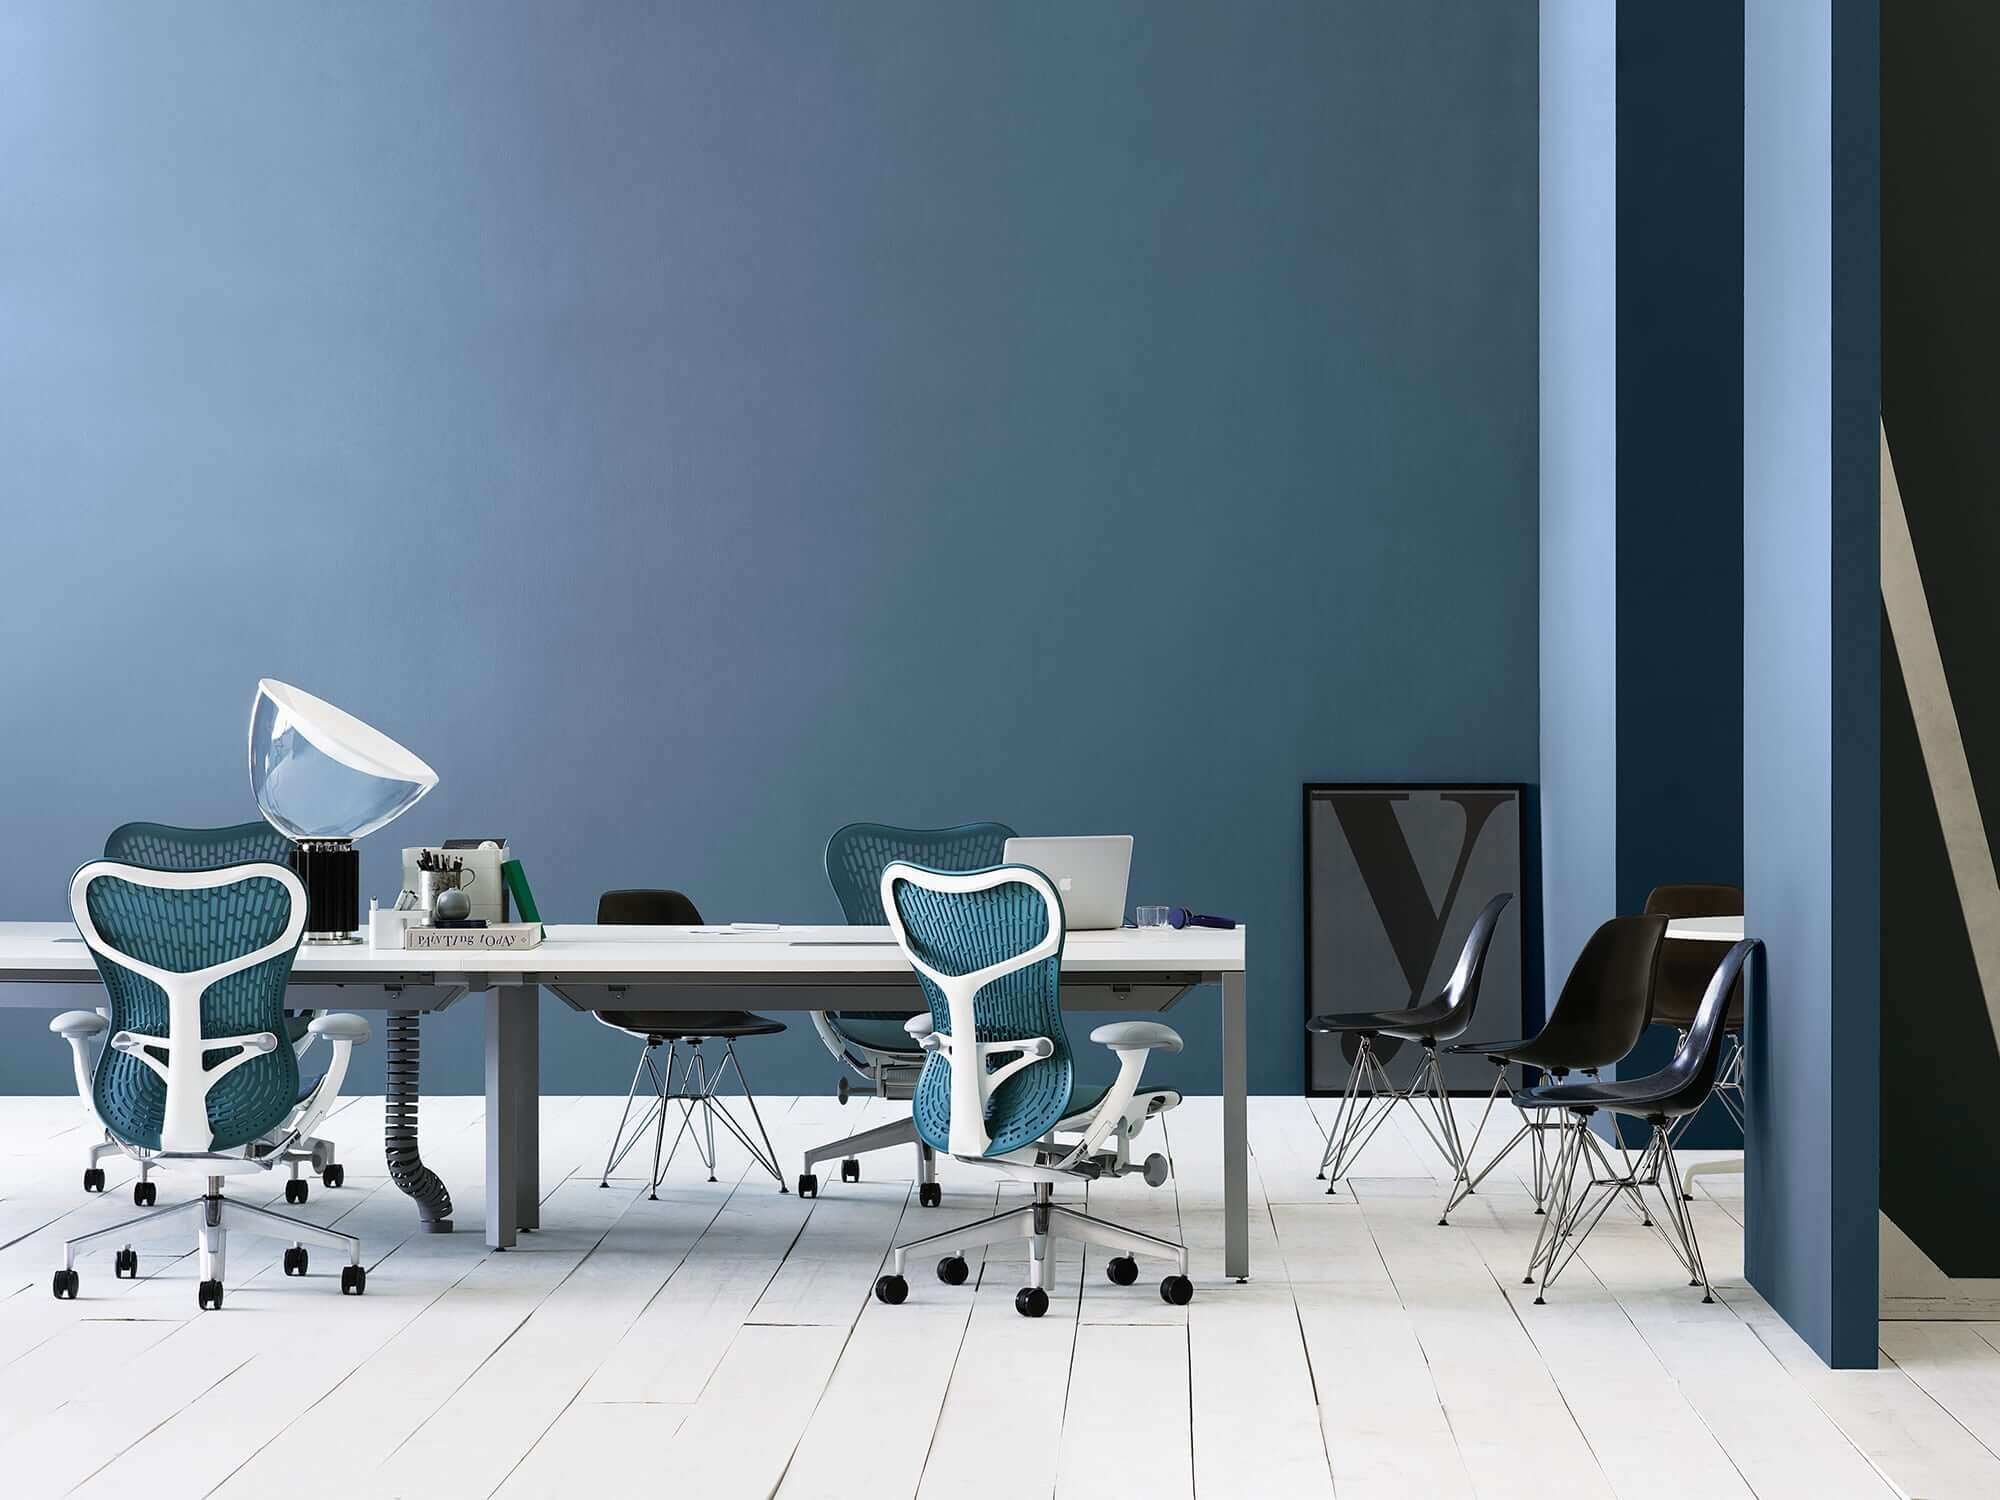 Mirra 2 chair - one of the best Herman Miller ergonomic office chairs